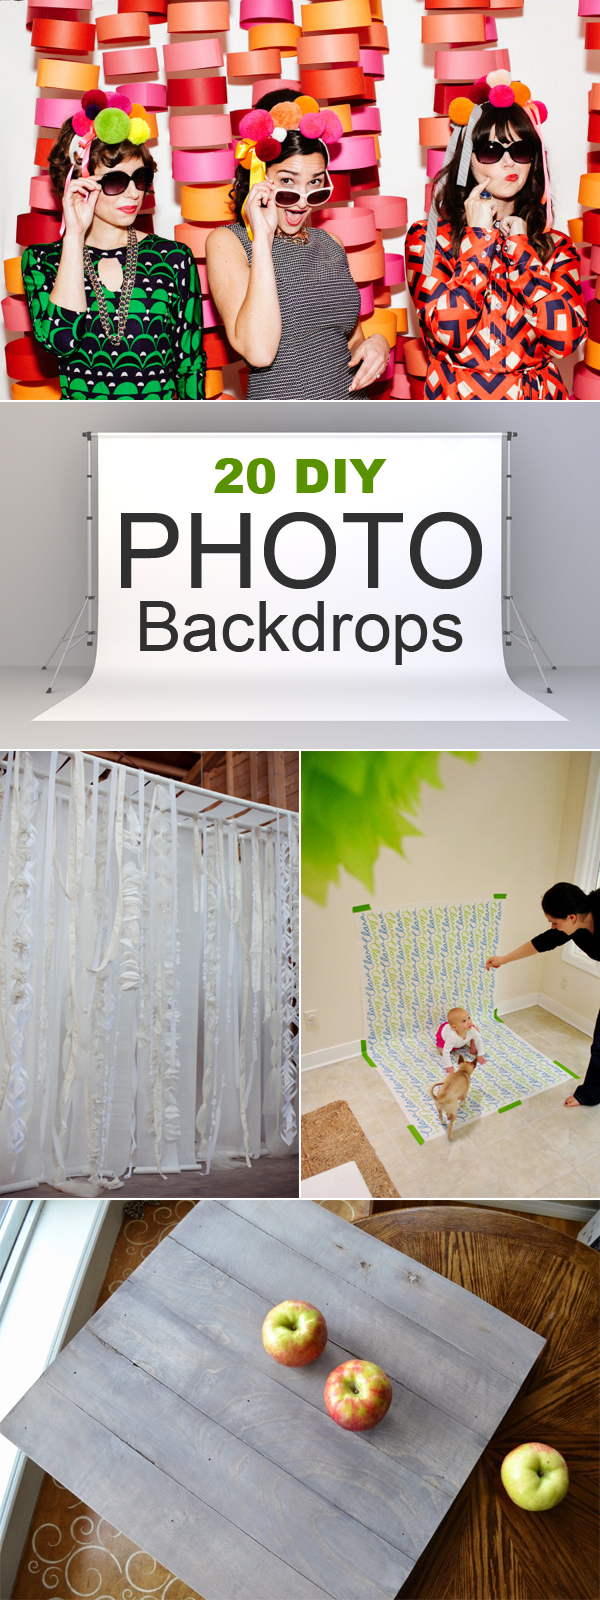 20 DIY Photo Backdrops That Will Make Your Photos Beautiful